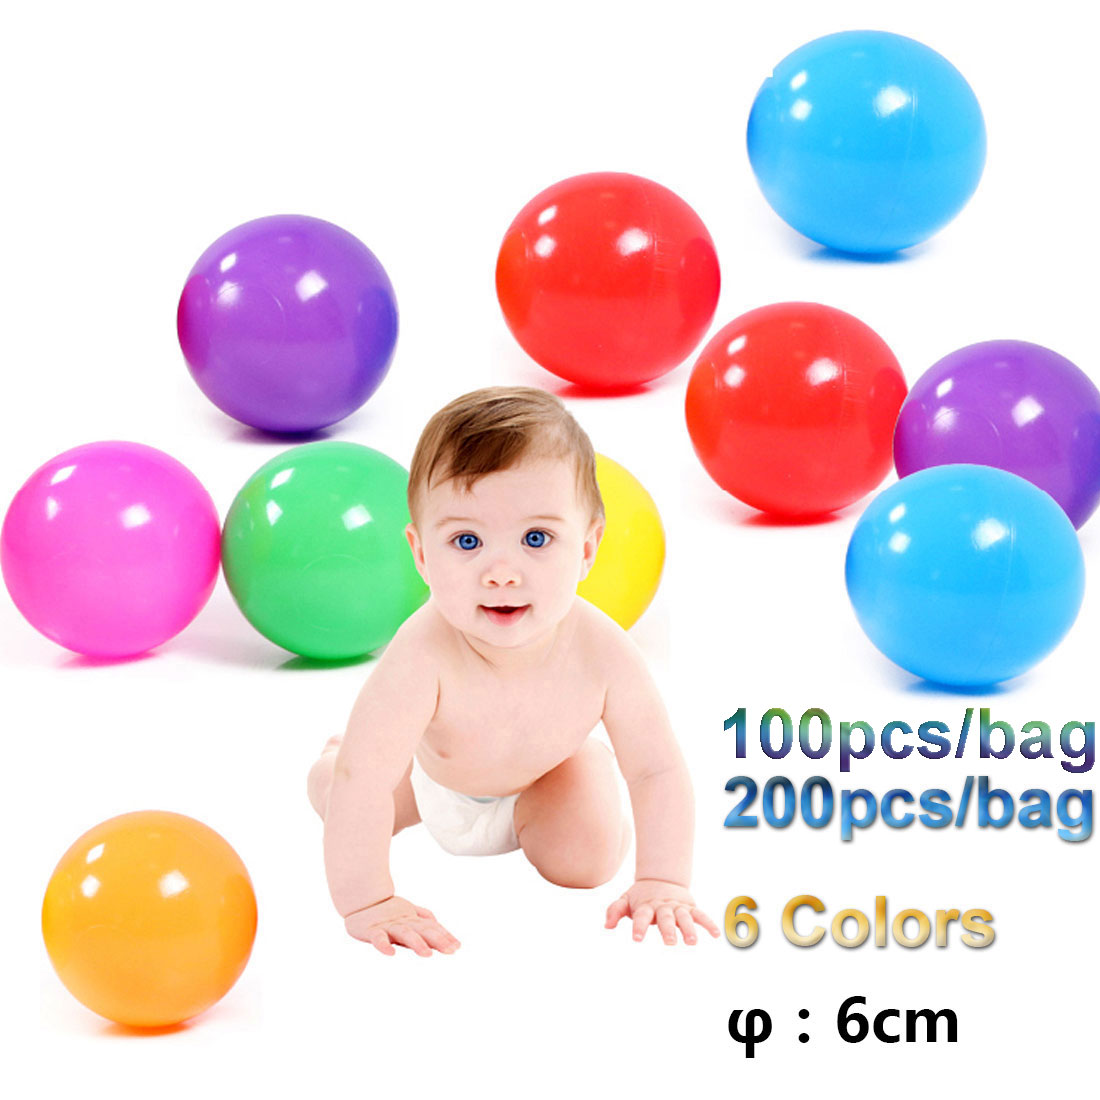 In Quality 100pcs/200pcs/bag Eco-friendly 6 Bright Colors Soft Plastic Water Pool Ocean Wave Ball In Mesh Bag With Zipper Baby Funny Superior